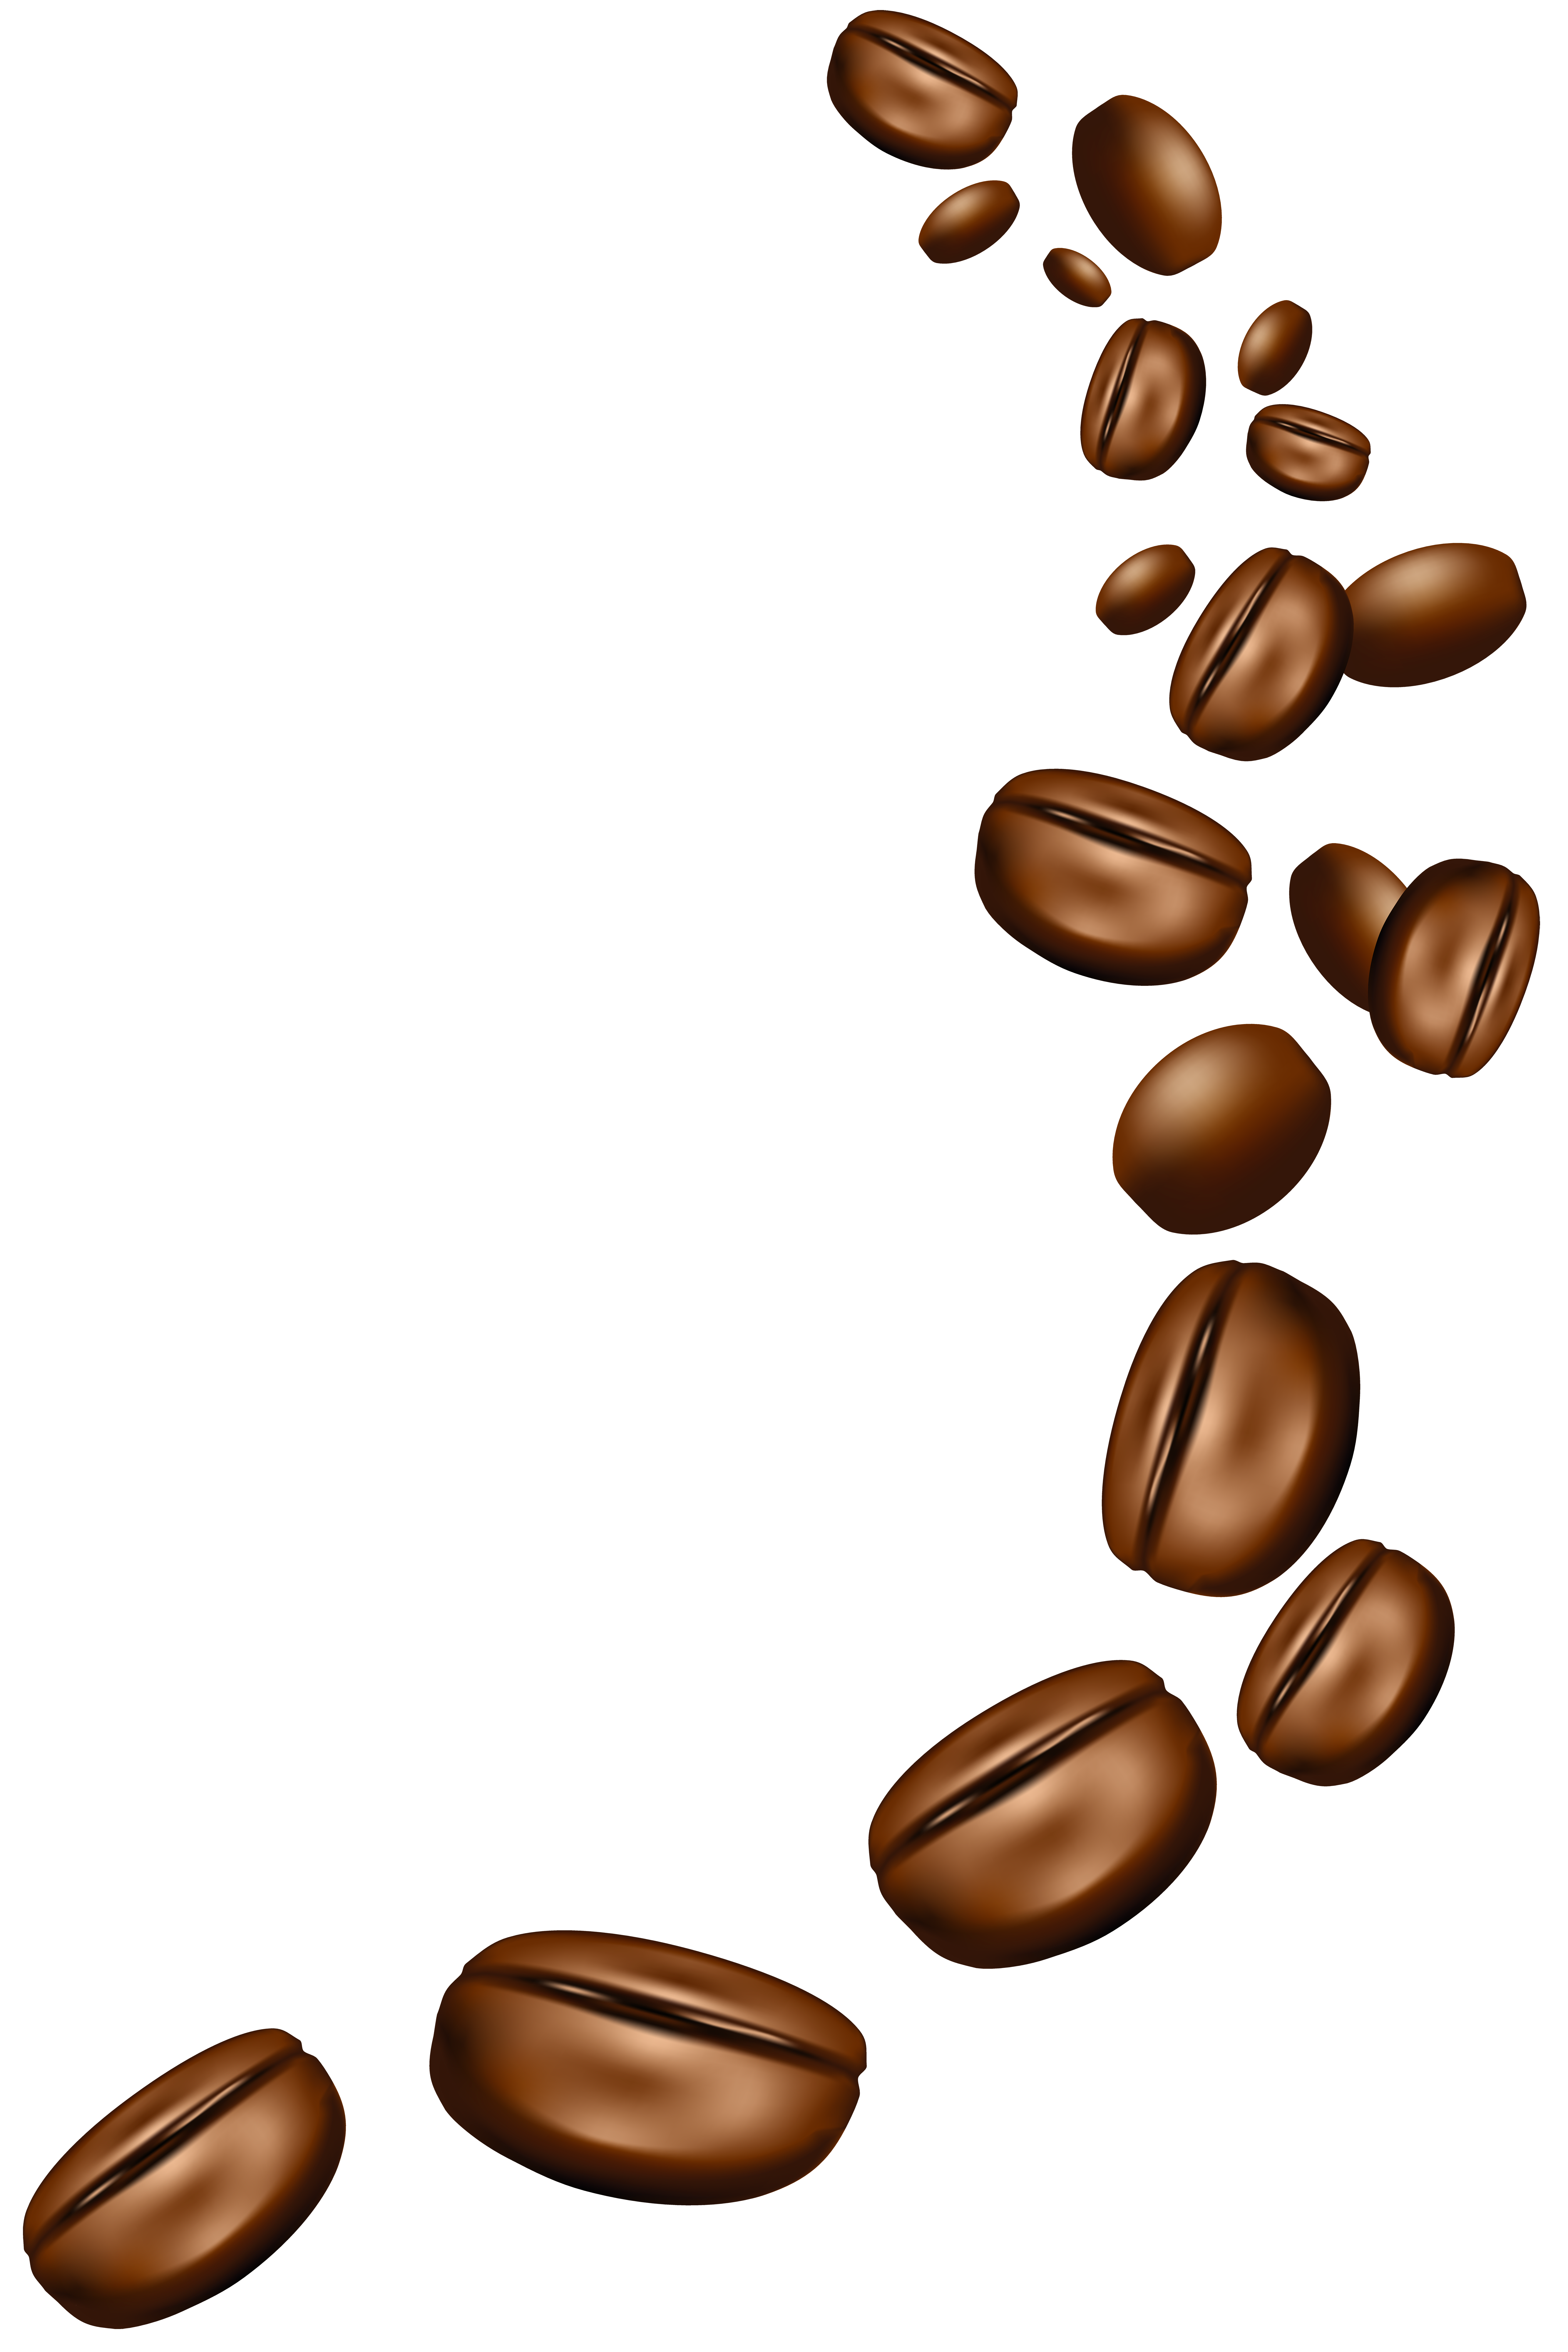 Beans clipart transparent. Coffee png image gallery